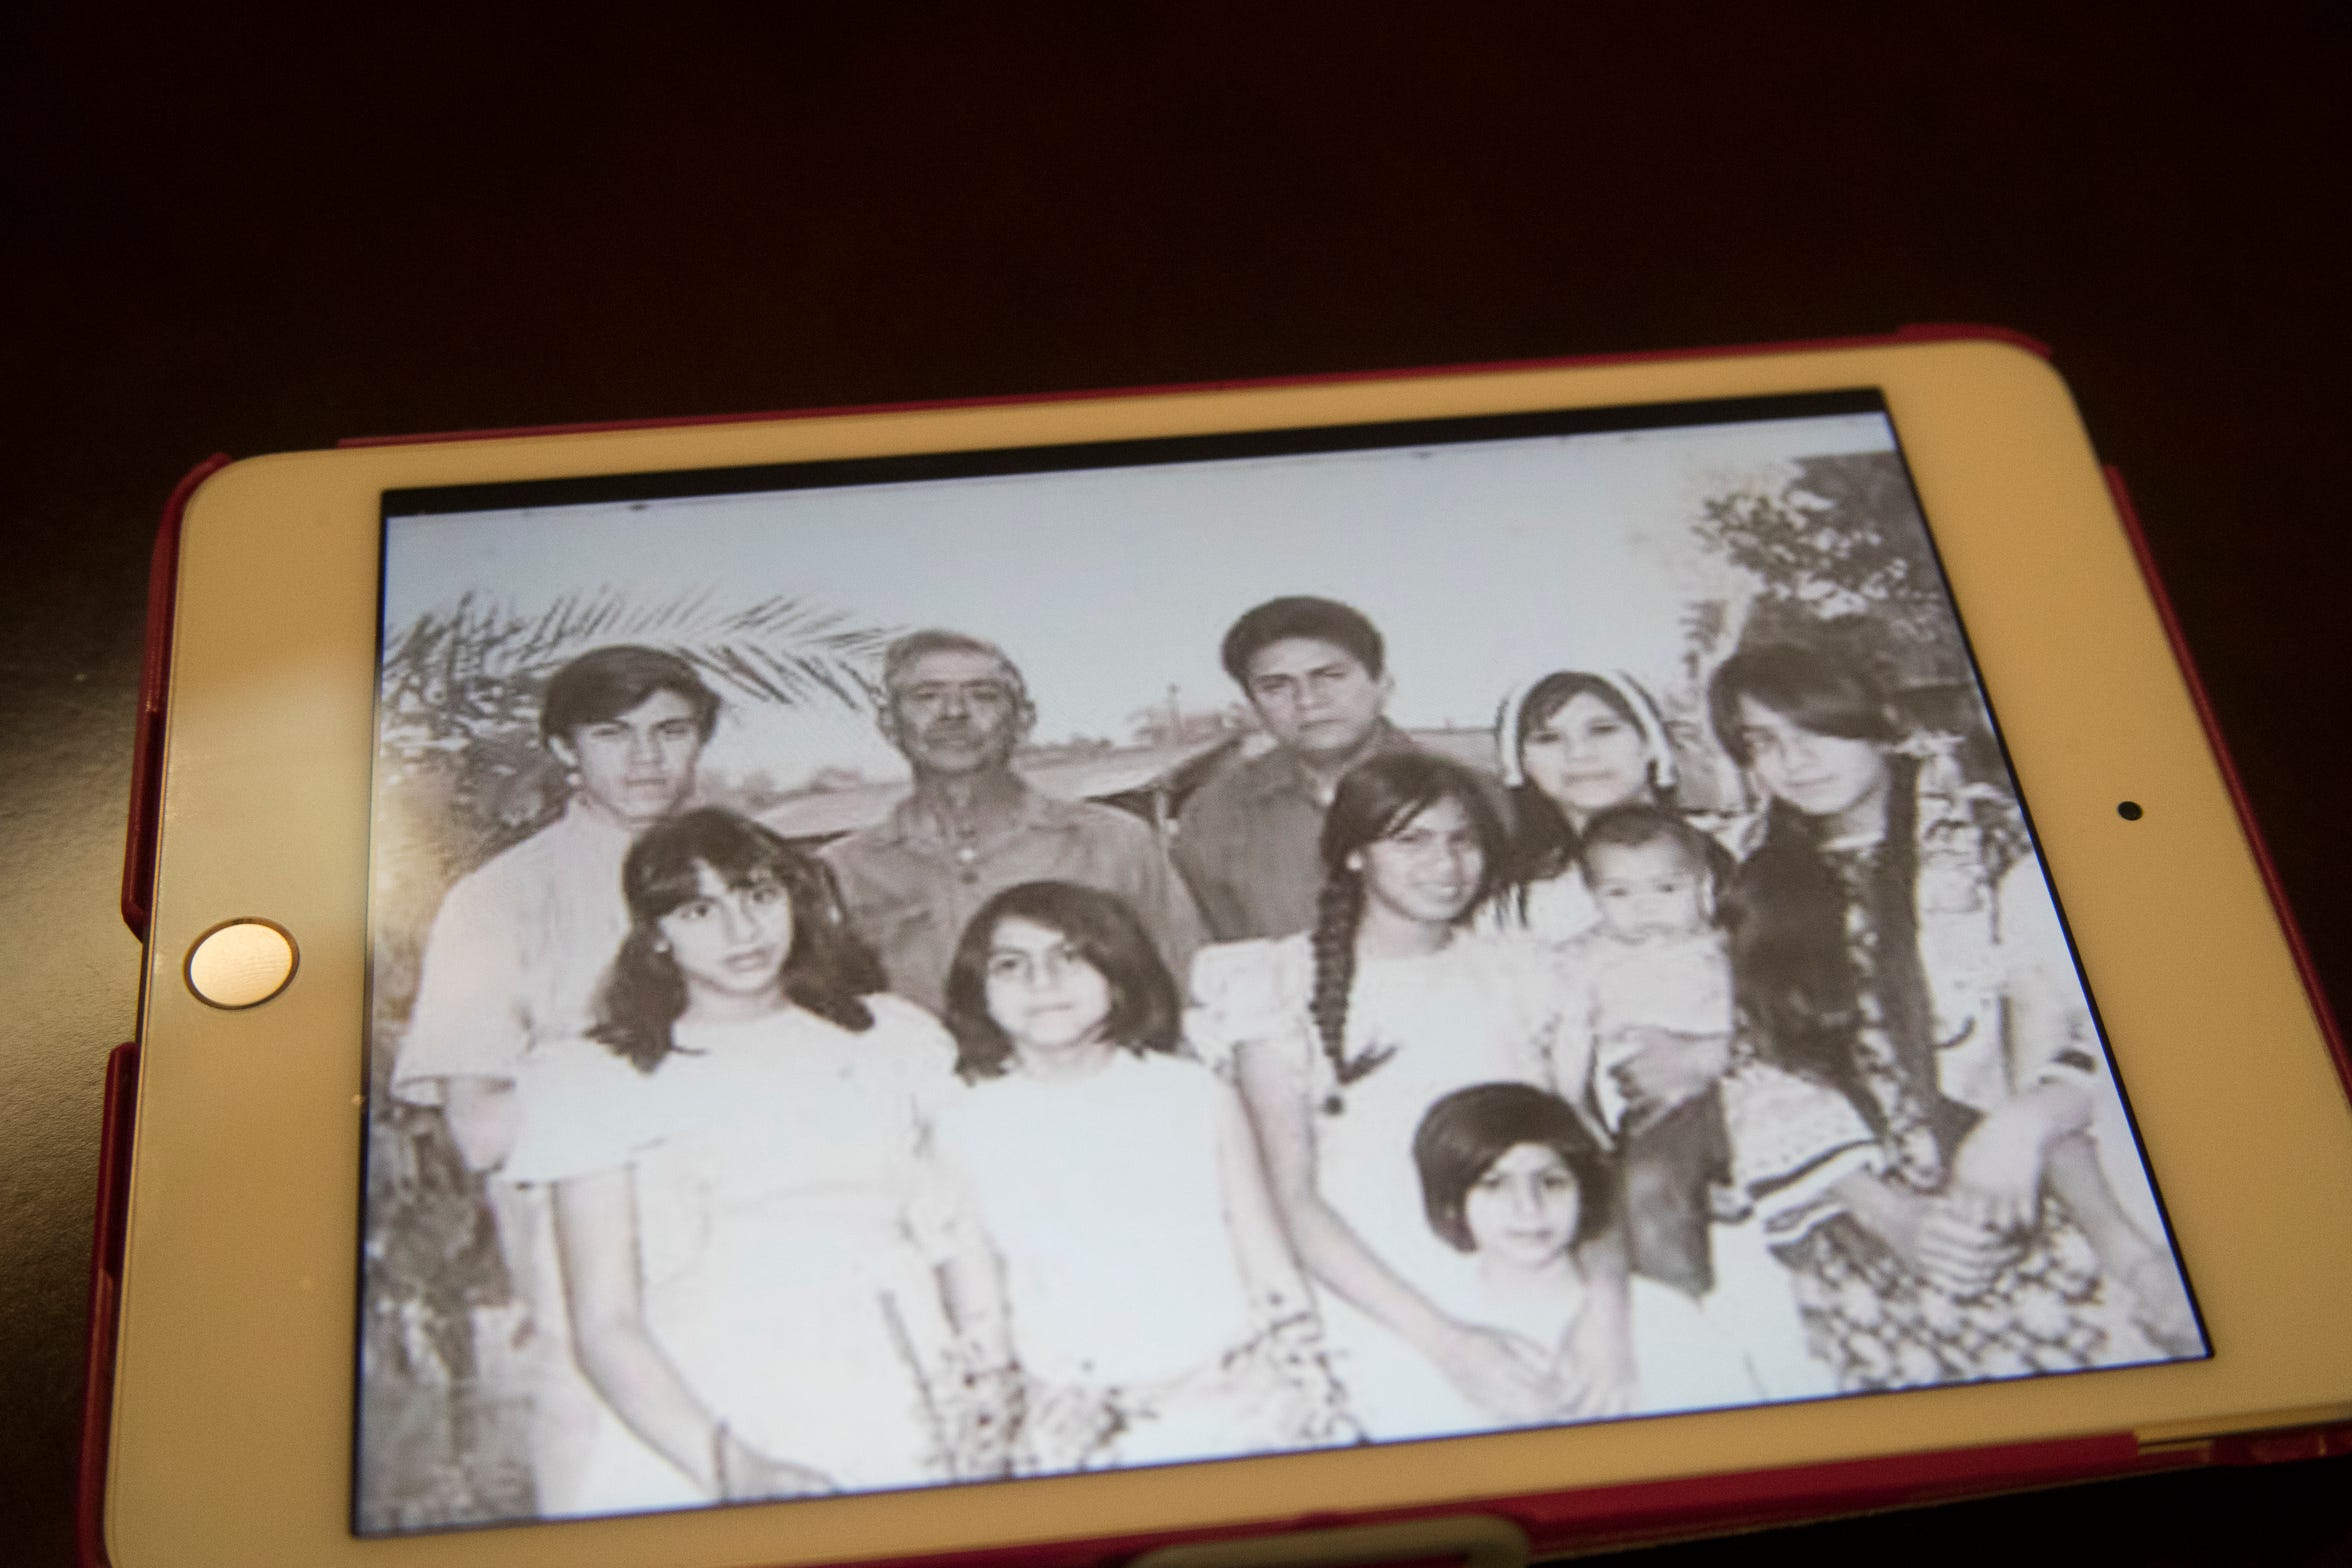 Librado Cardenas Zazueta died along with 18 others in an accident aboard a farmworker bus en route to Blythe on January 15, 1974. Here he is pictured with his family.